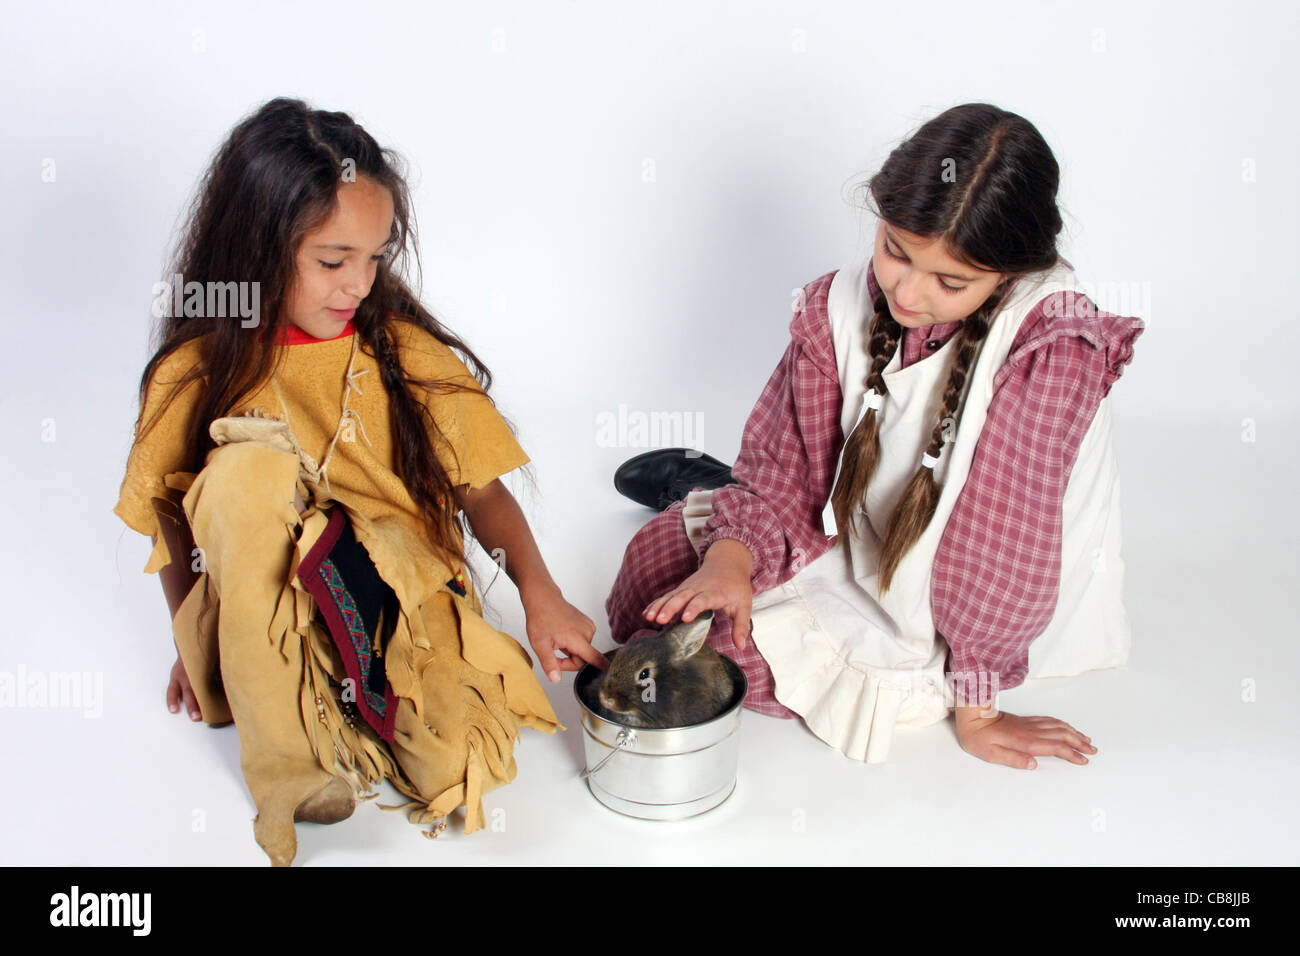 A young Native American Indian child and a settler girl petting a bunny  rabbit - Stock